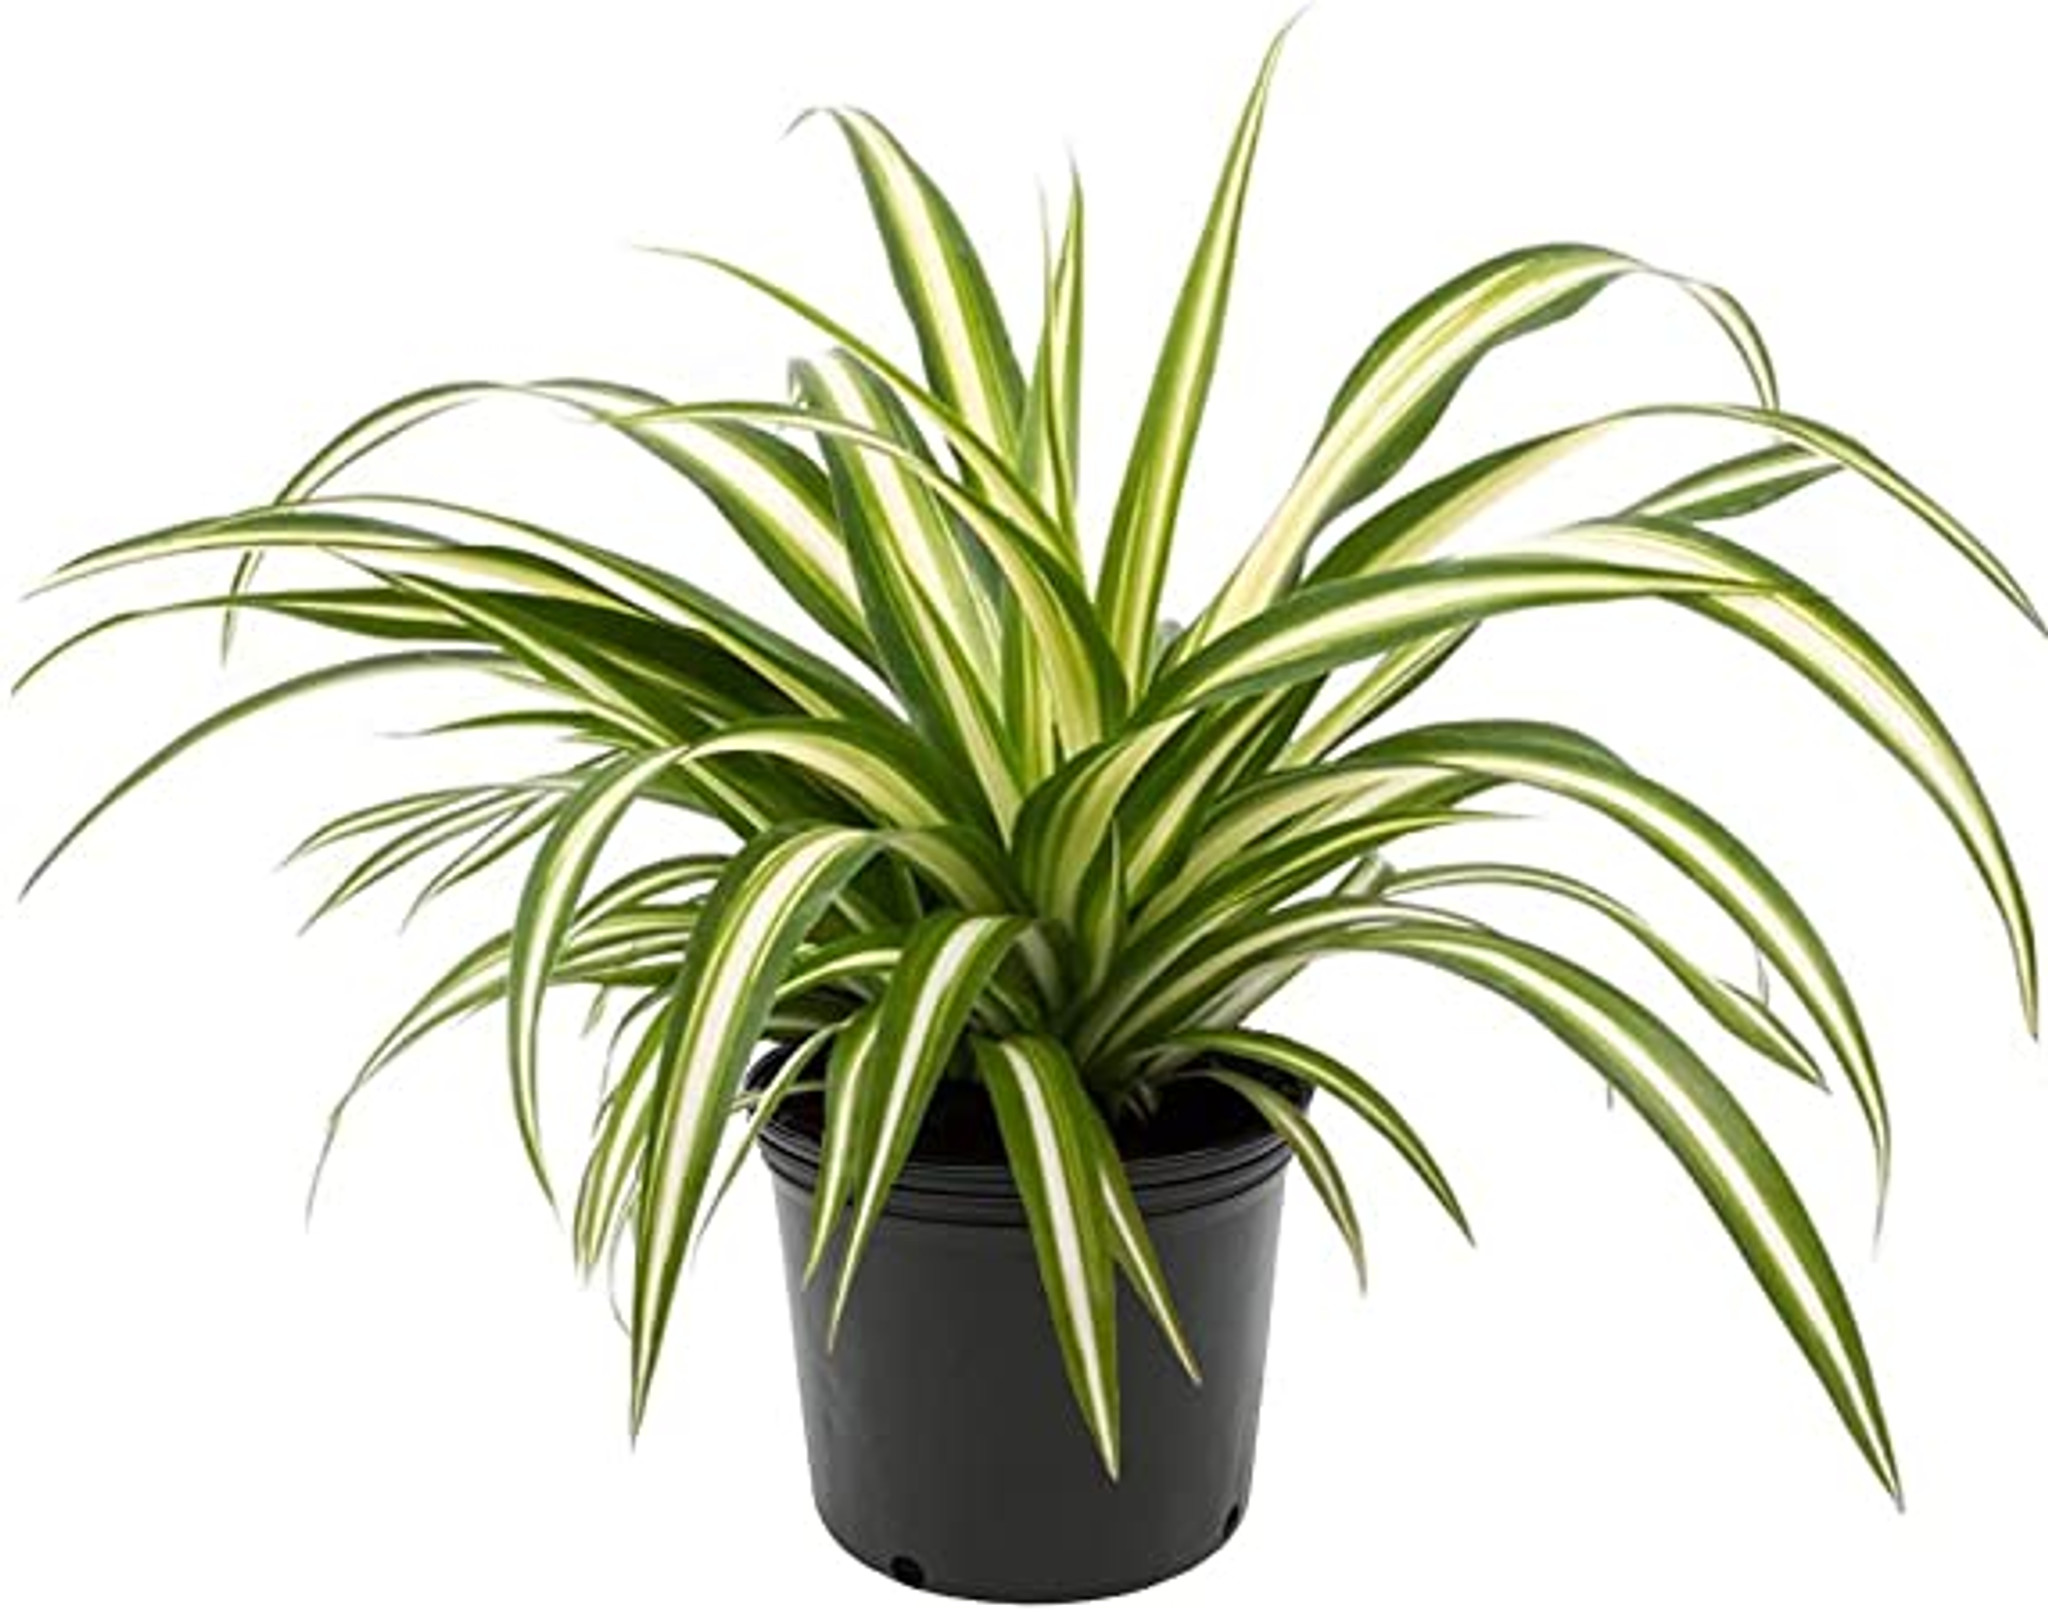 "Spider Plant 'Chlorophytum comosum' 4"" and 8"" - Urban Garden Center"